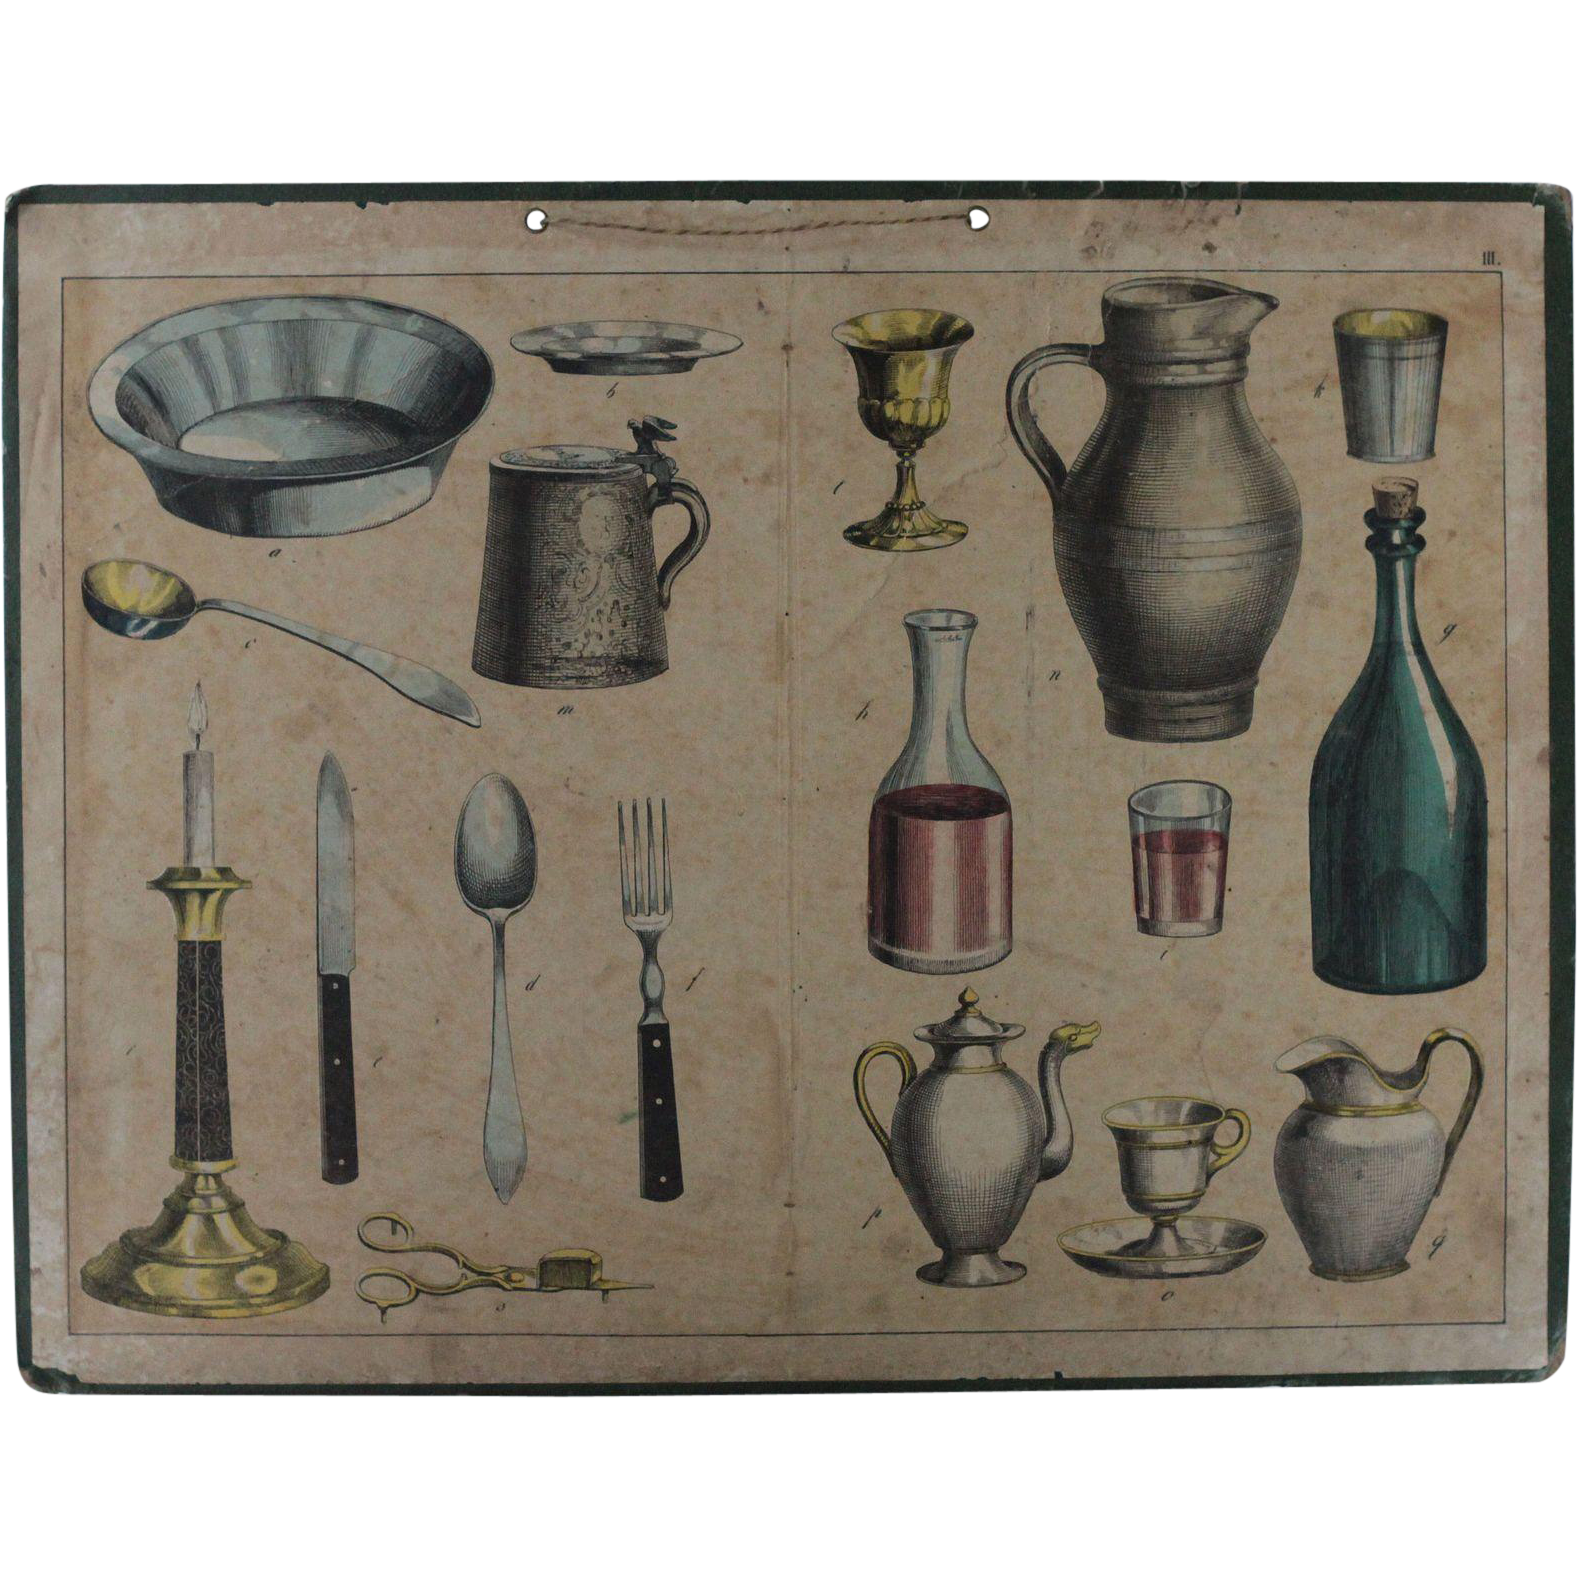 Antique French Copperplate Engraved Print - Kitchenware / Tableware